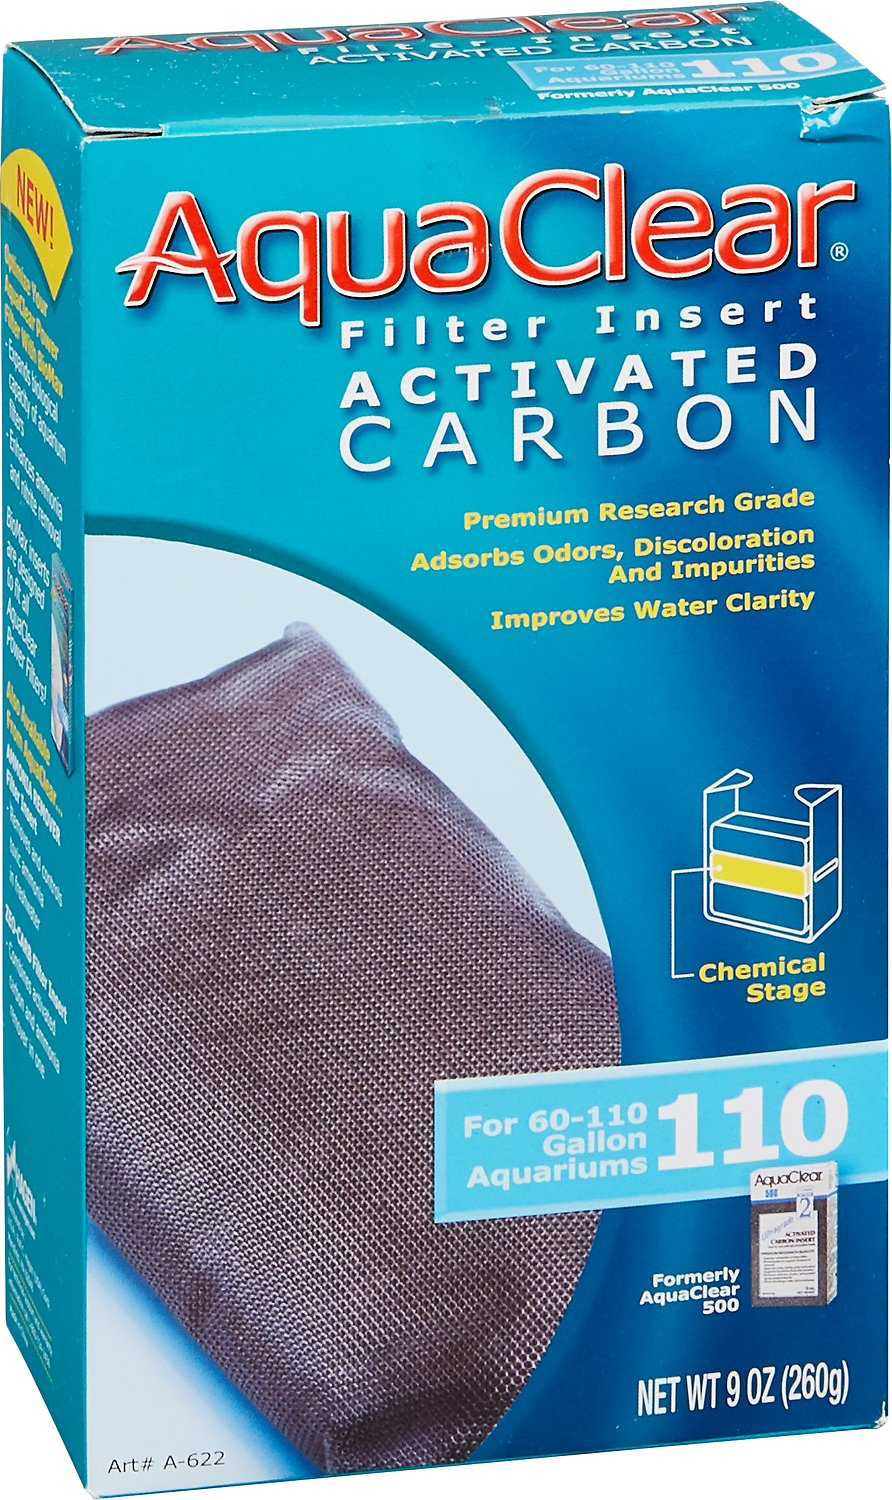 AquaClear Activated Carbon Filter Insert Image